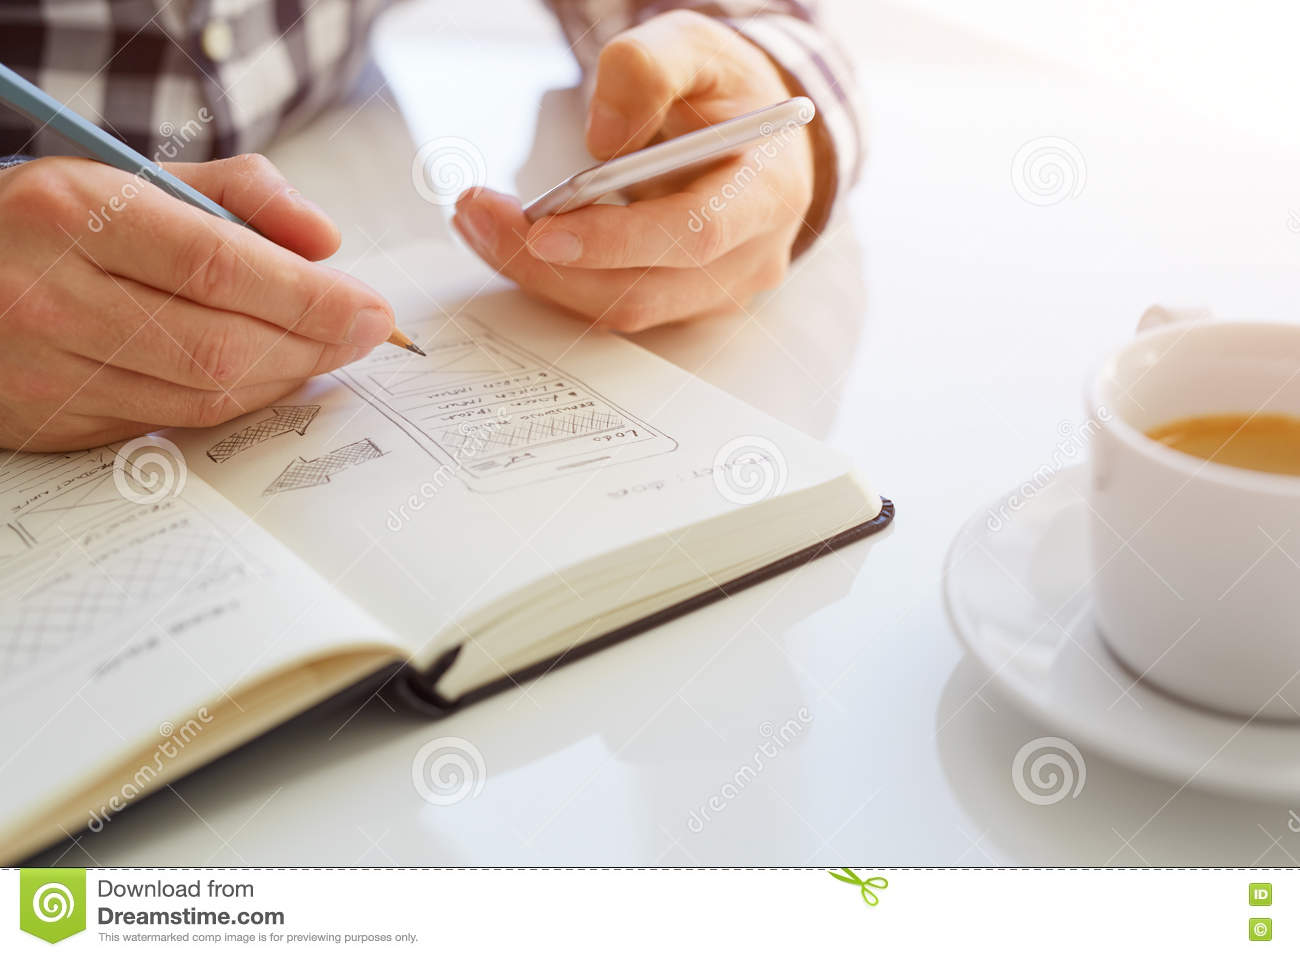 Man sketching web design and holding mobile phone